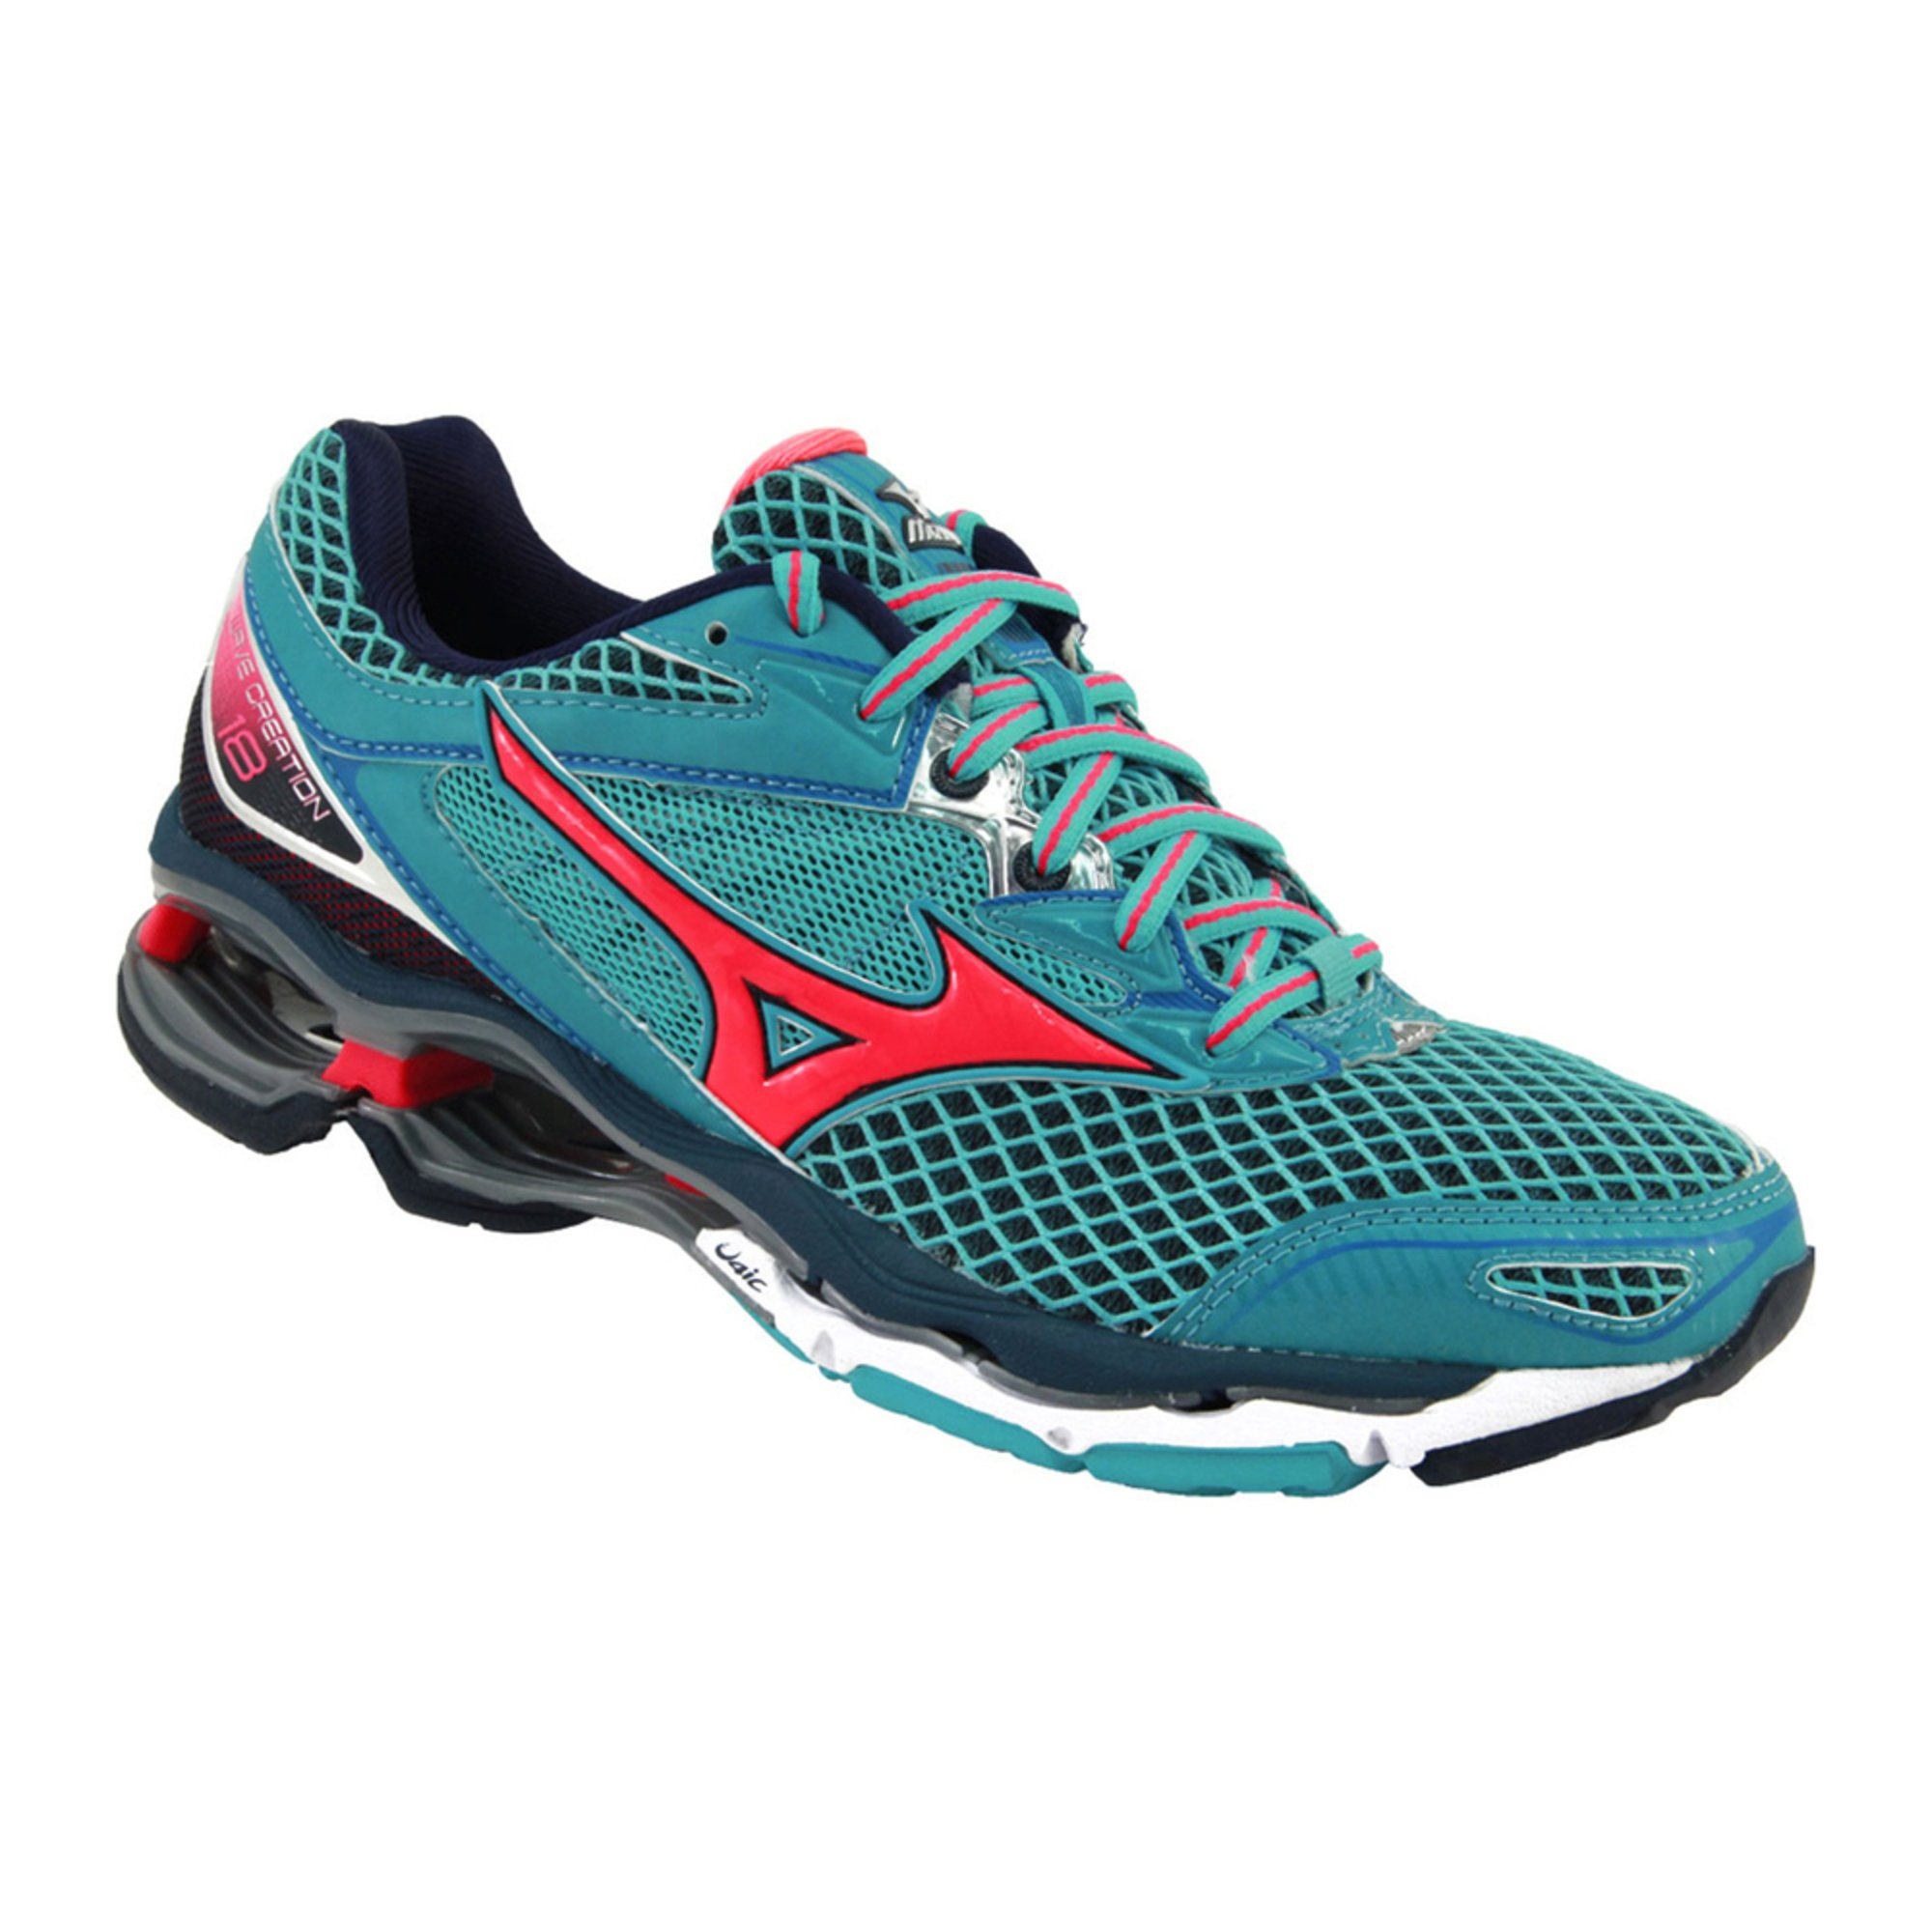 60ca0e8fb4cd mizuno wave creation 18 blue on sale > OFF36% Discounts